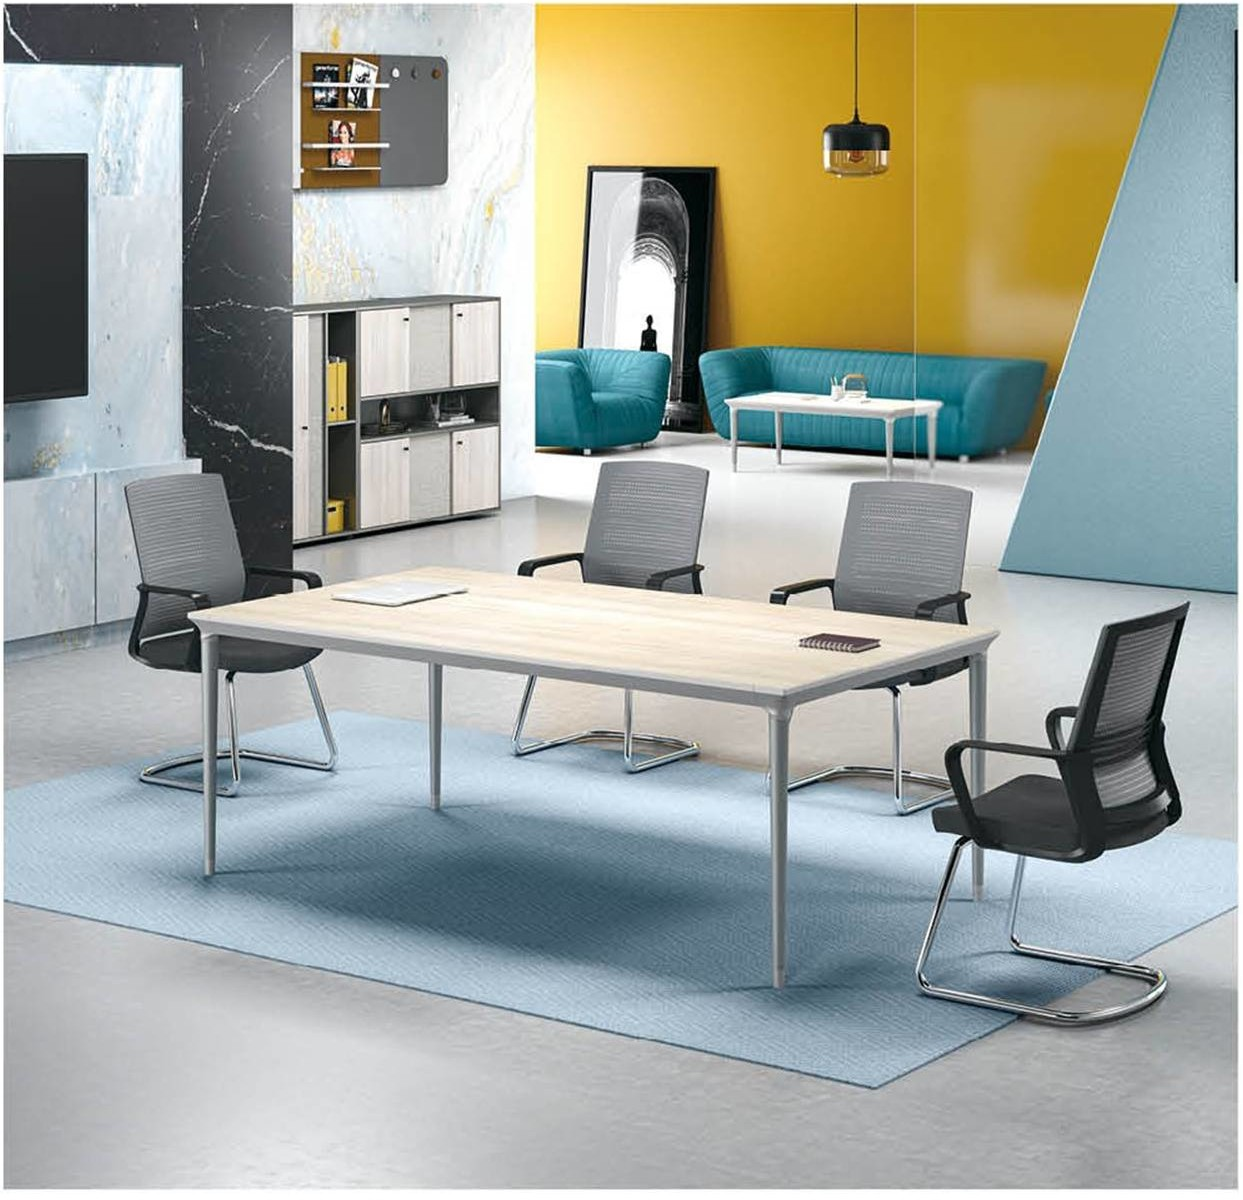 Modern Design 6 Seater Conference table,made of MFC melamine board (RS-31C2010)